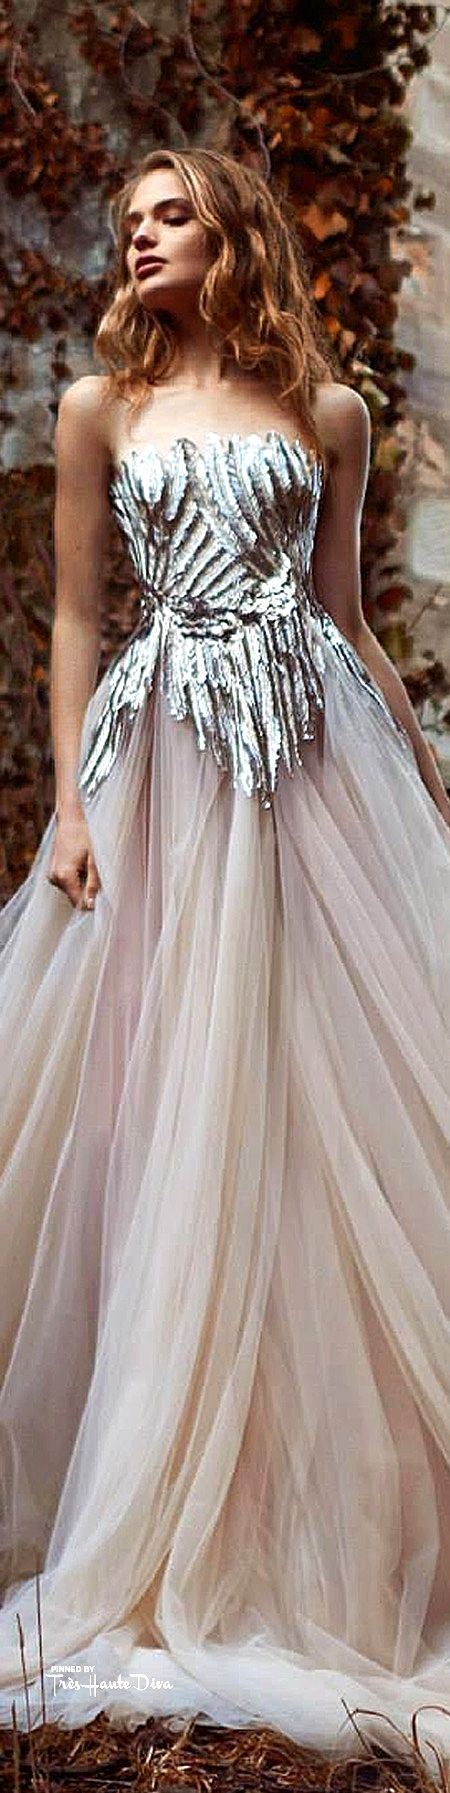 Paolo Sebastian ~ Couture Silver Metallic Bodice w dropped waistline + Full Pleated Blush Skirt   Summer2015